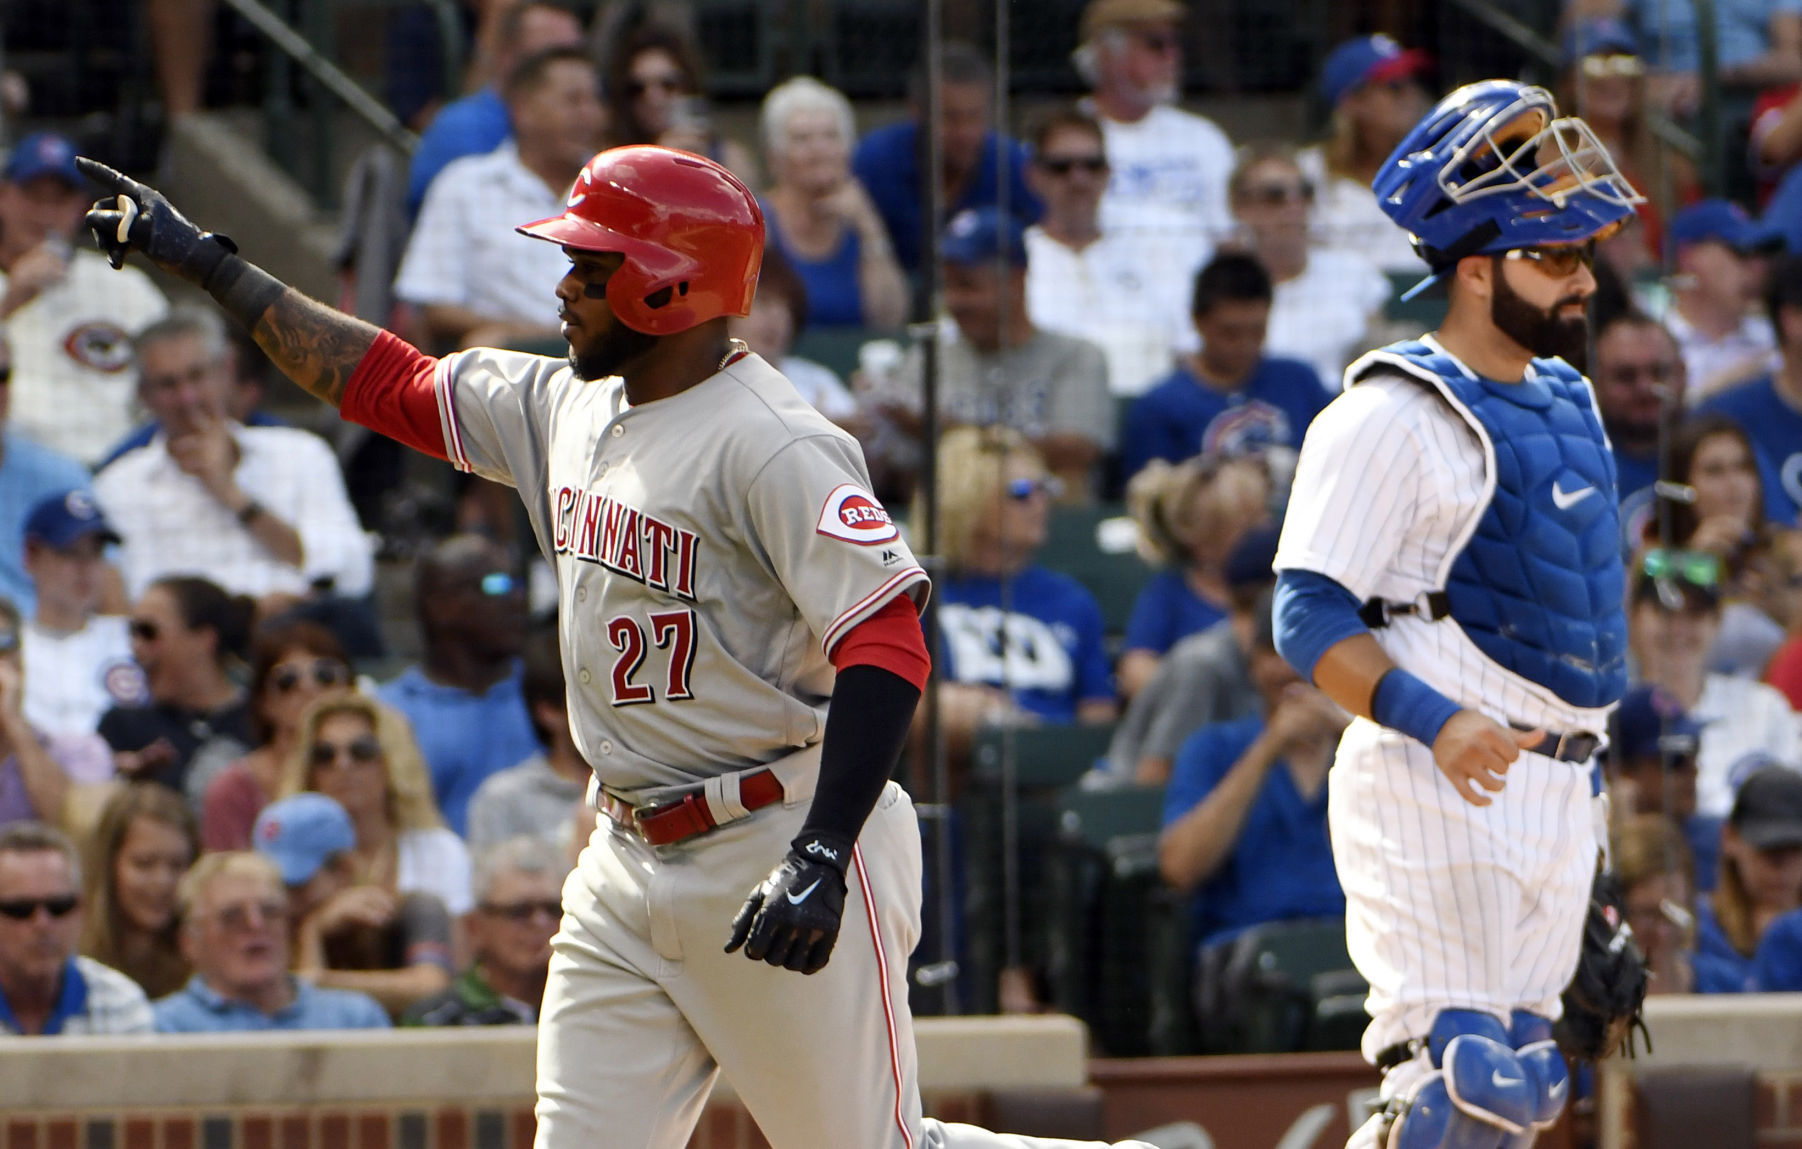 Ervin's big day helps Reds outslug Cubs